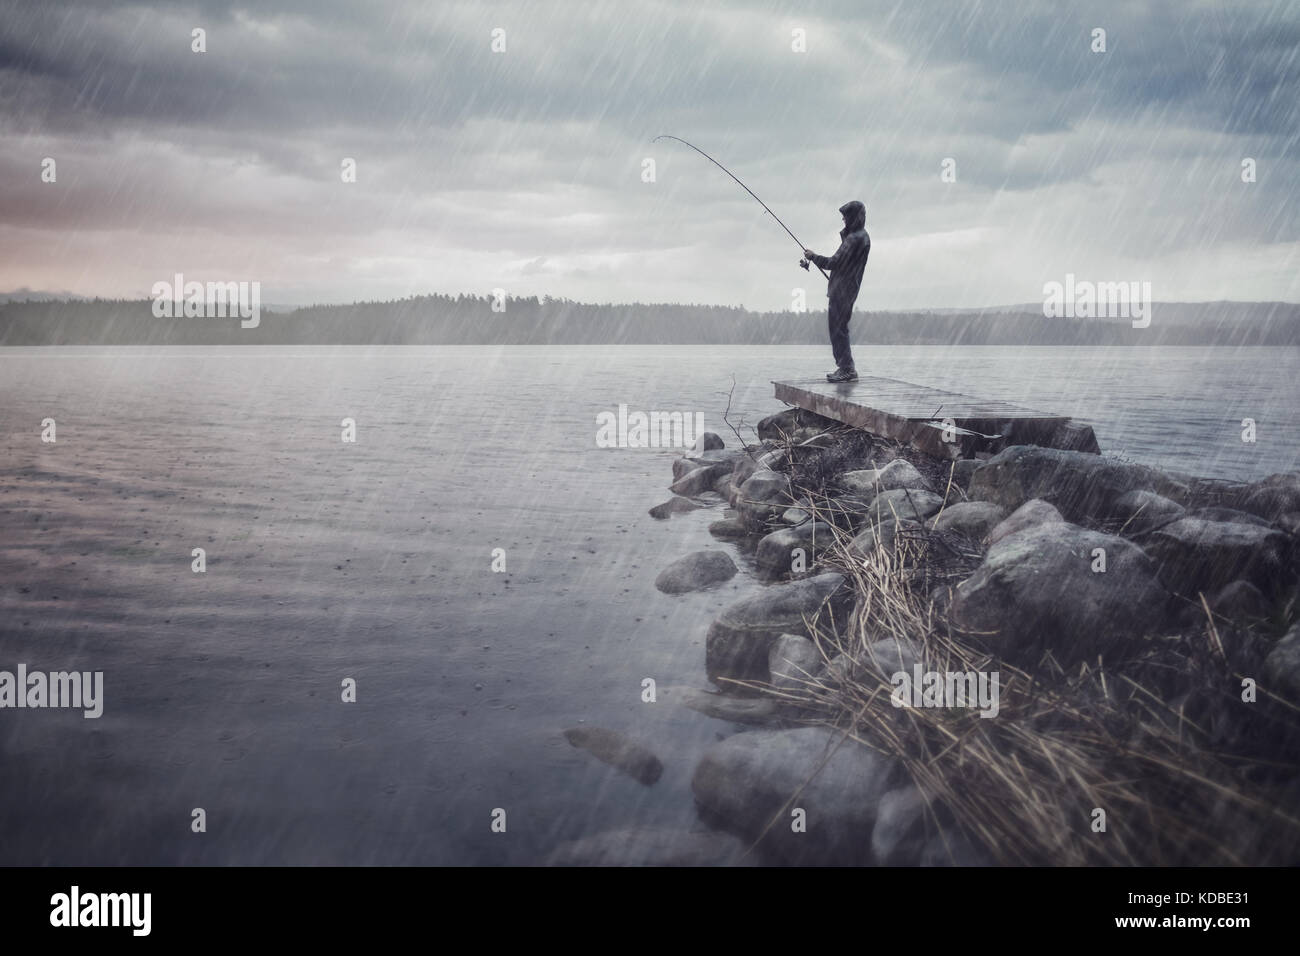 Man at a lake fishing in the rain - Stock Image